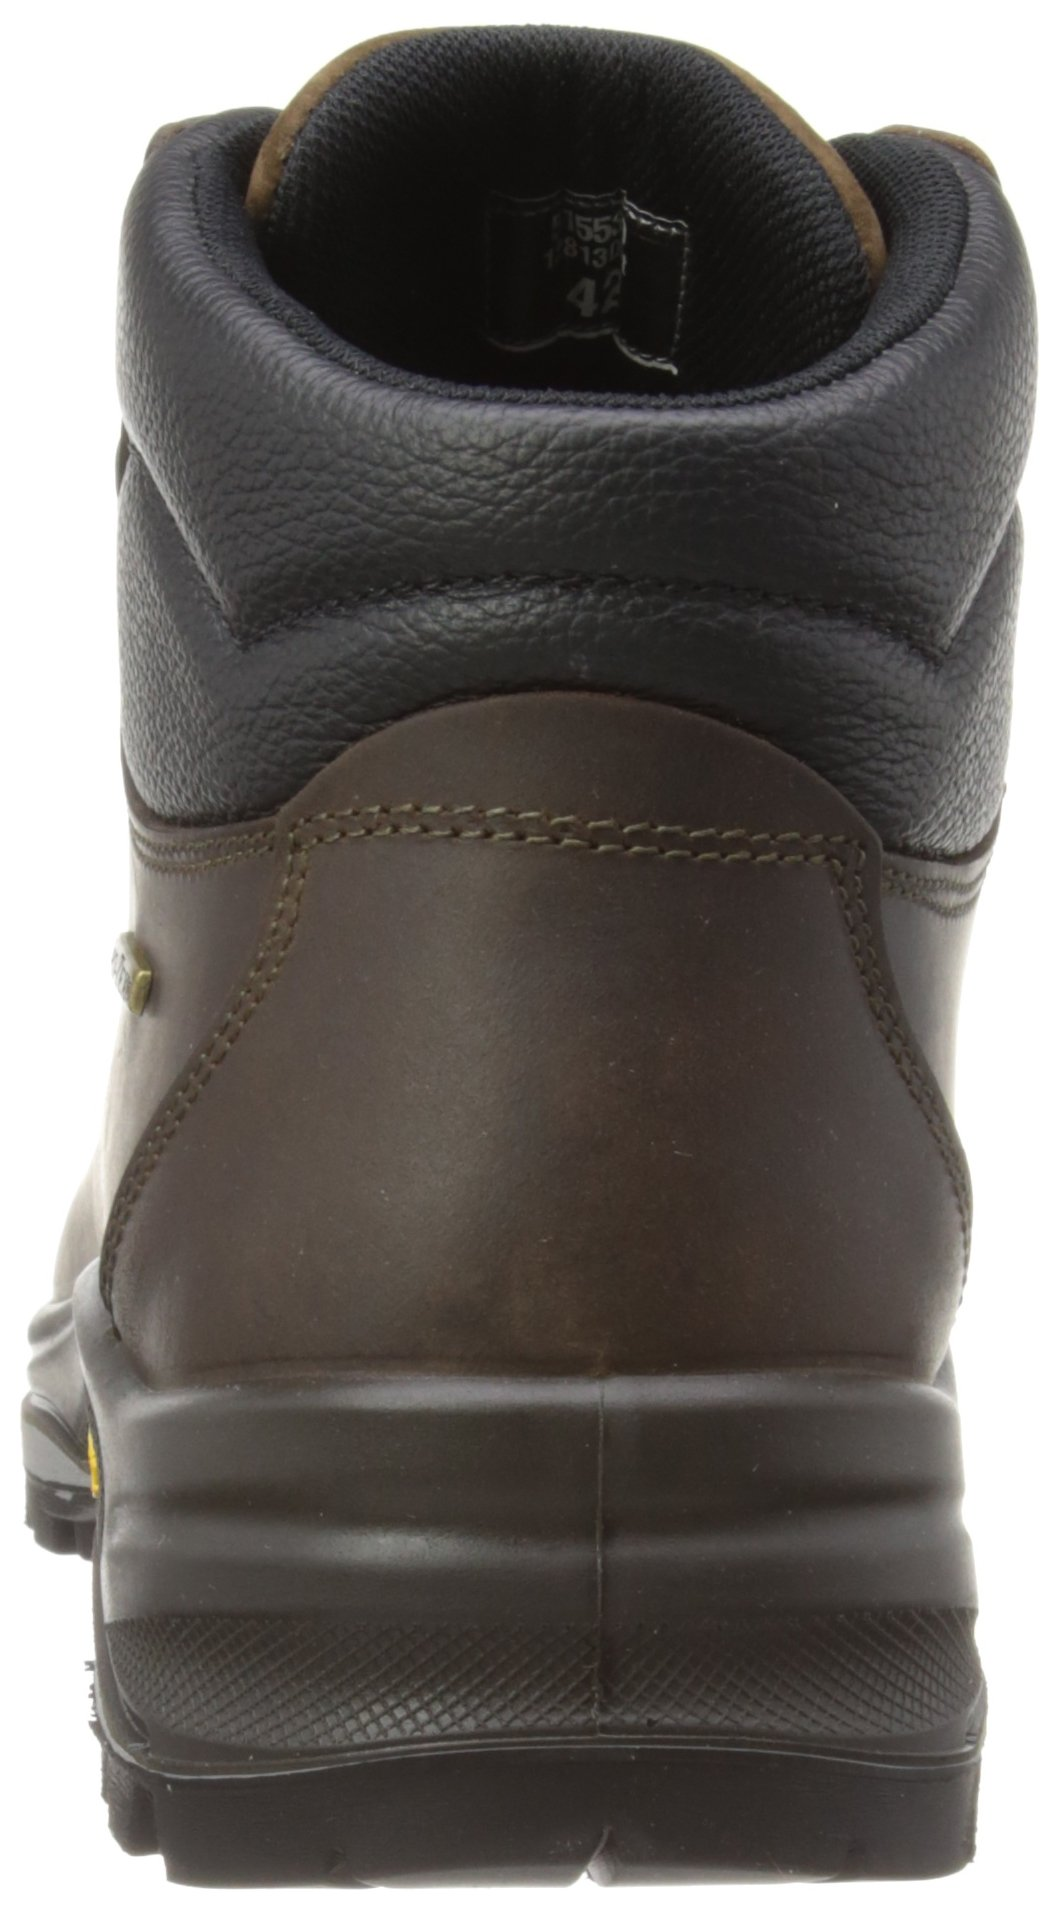 Grisport Unisex-Adult Fuse Trekking and Hiking Boots 2